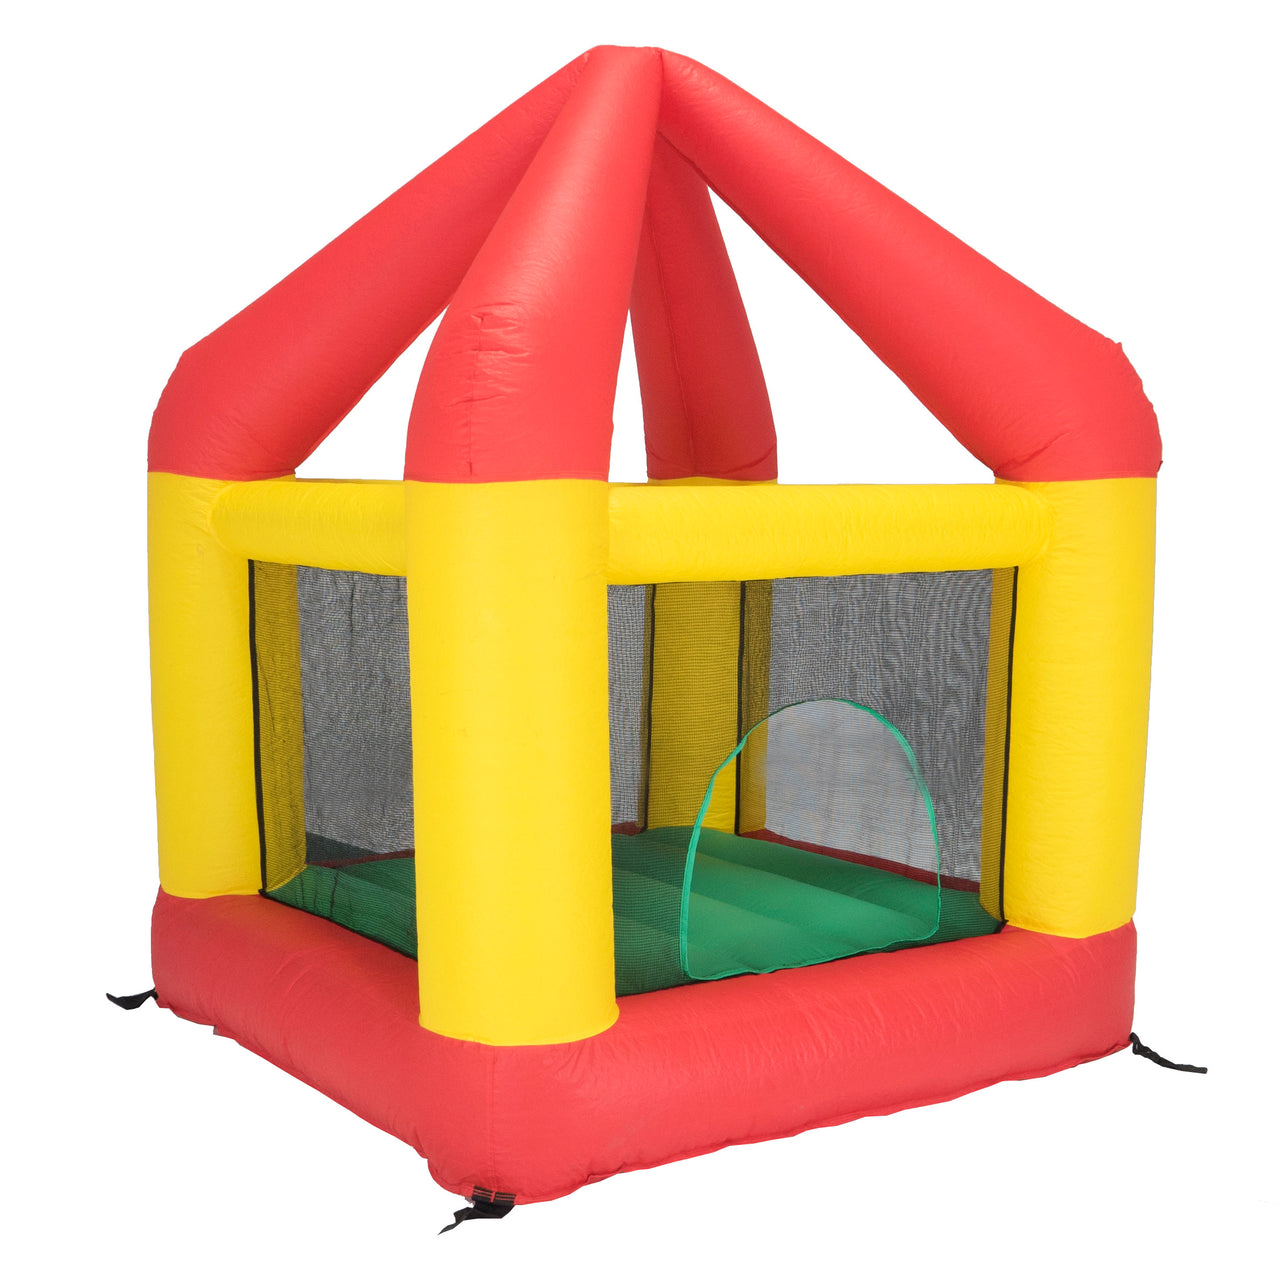 Bazoongi 6.25' X 6' Bounce House With Open Roof (Without Cover) Bh66Or